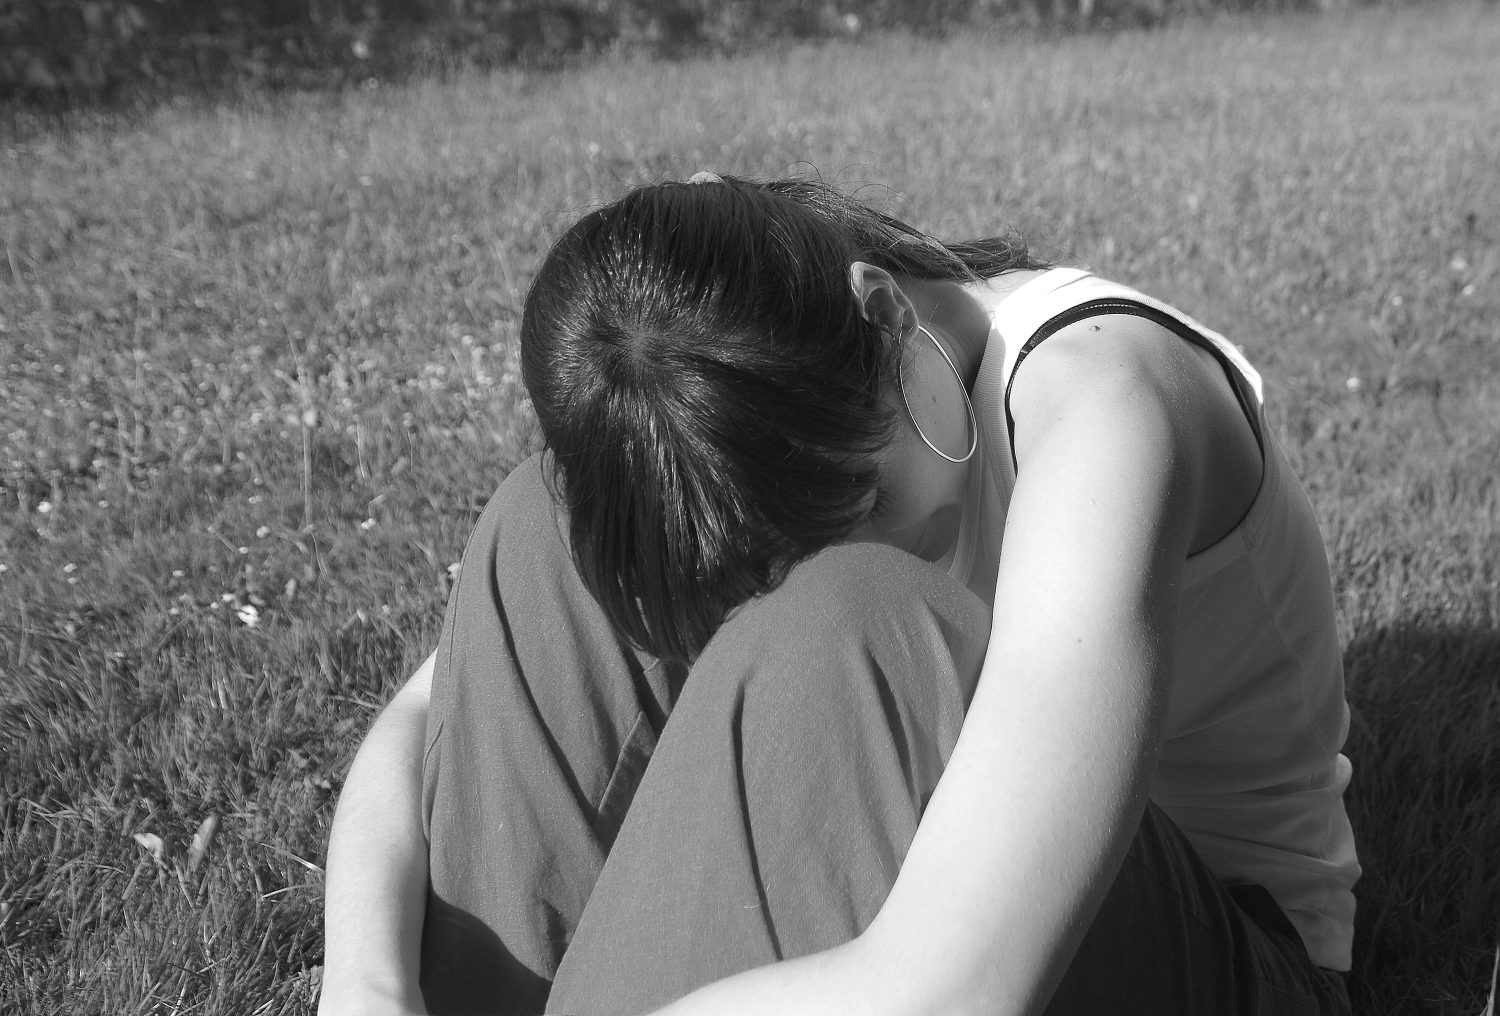 Do You Have Any Idea What Changes In A Woman After Being In An Abusive Relationship?